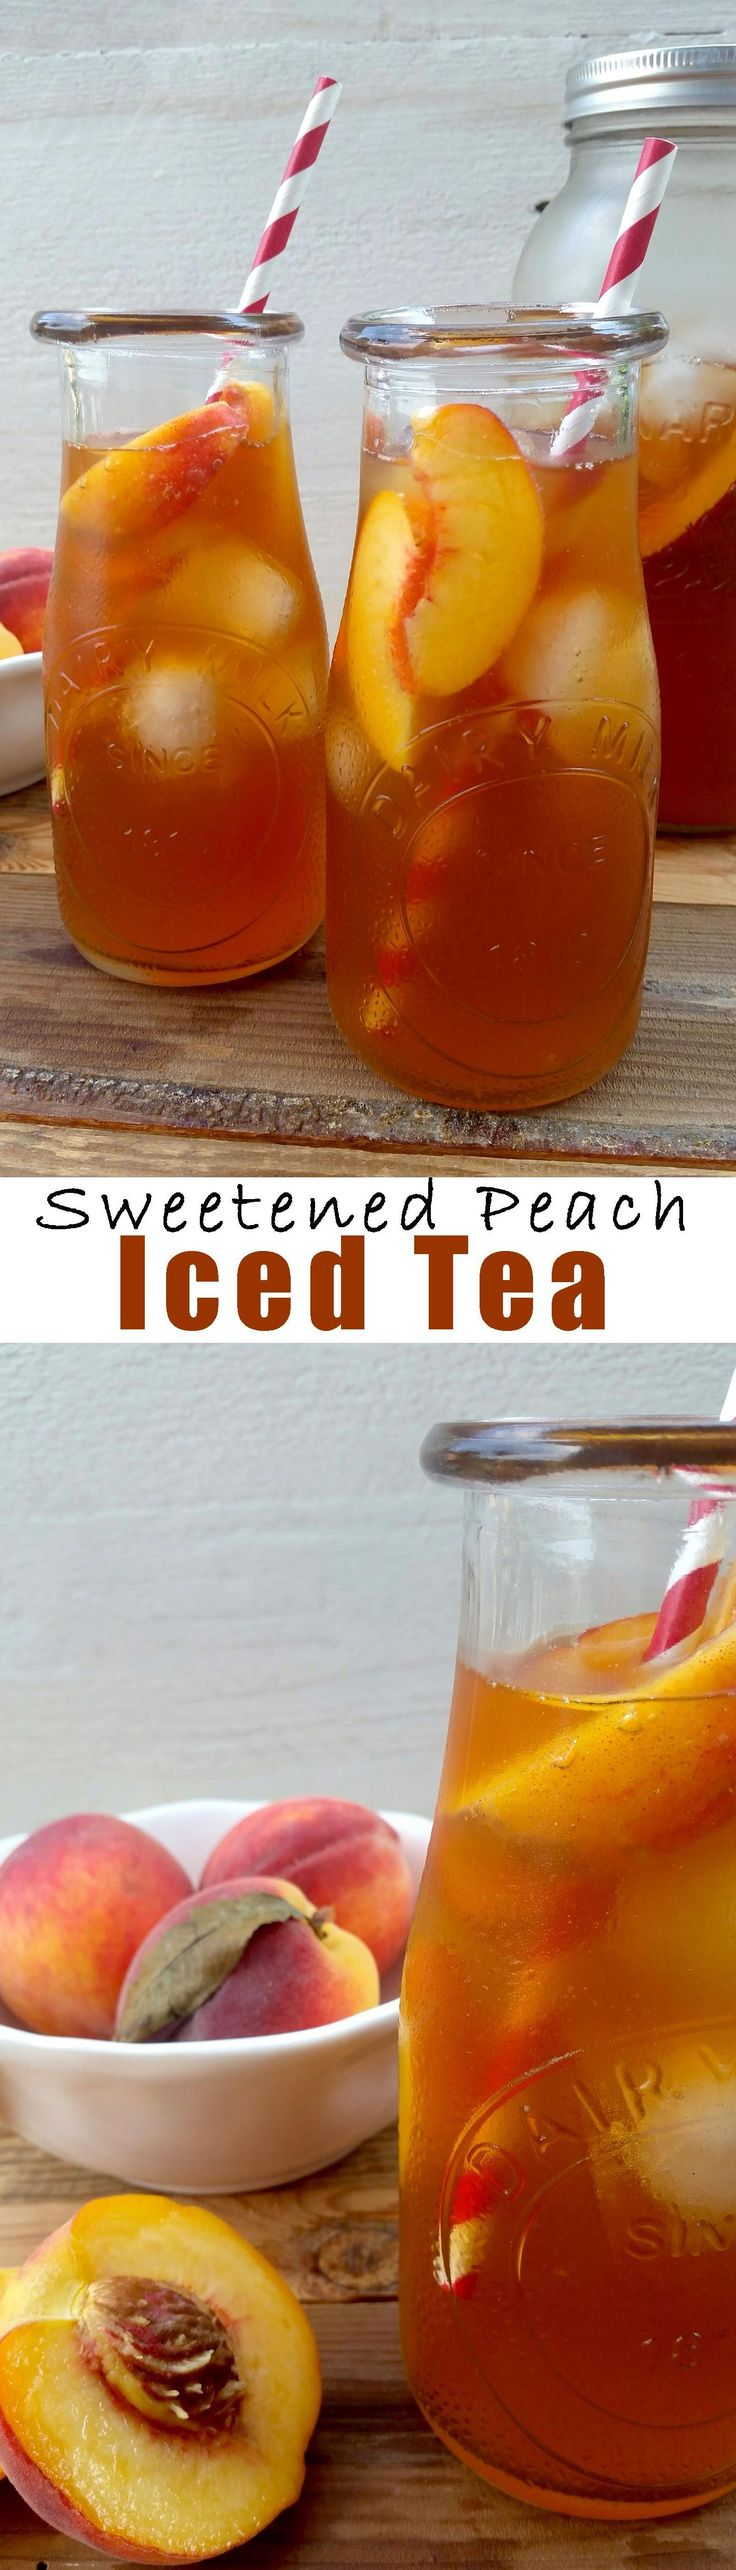 Sweetened Peach Iced Tea                                                                                                                                                     More